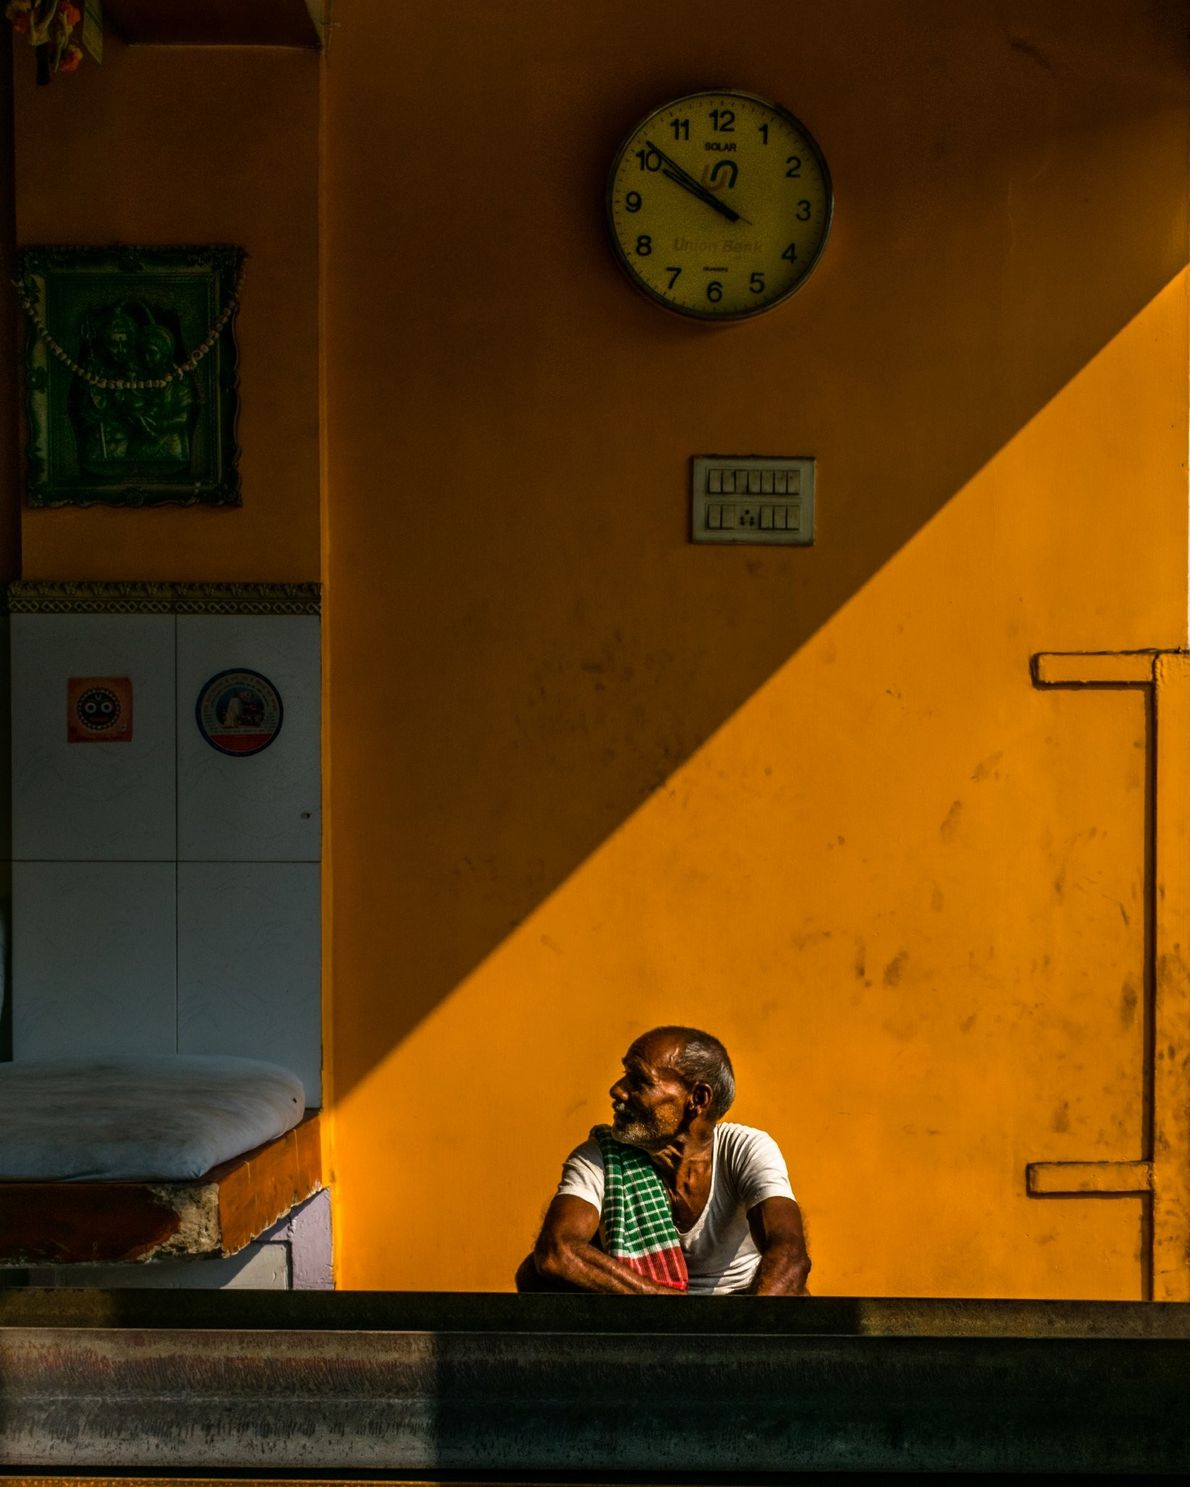 Your Shot photographer Oindrila Ghosh made this portrait of a man while he took a break ...